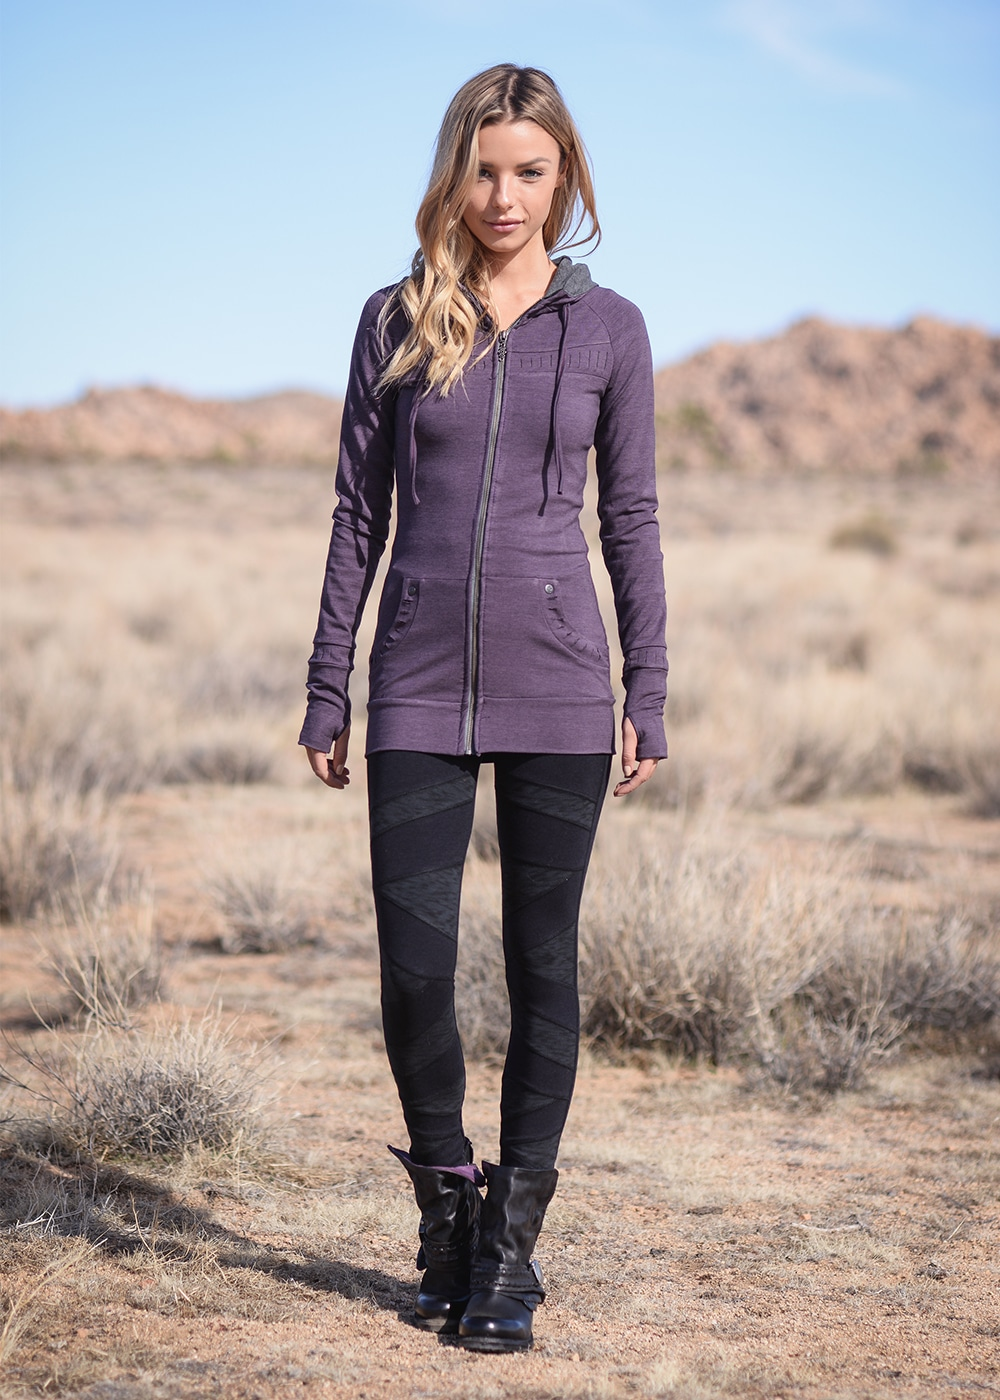 Bamboo and Organic Cotton Elevate Tunic in Purple by Nomads Hemp Wear Full Body